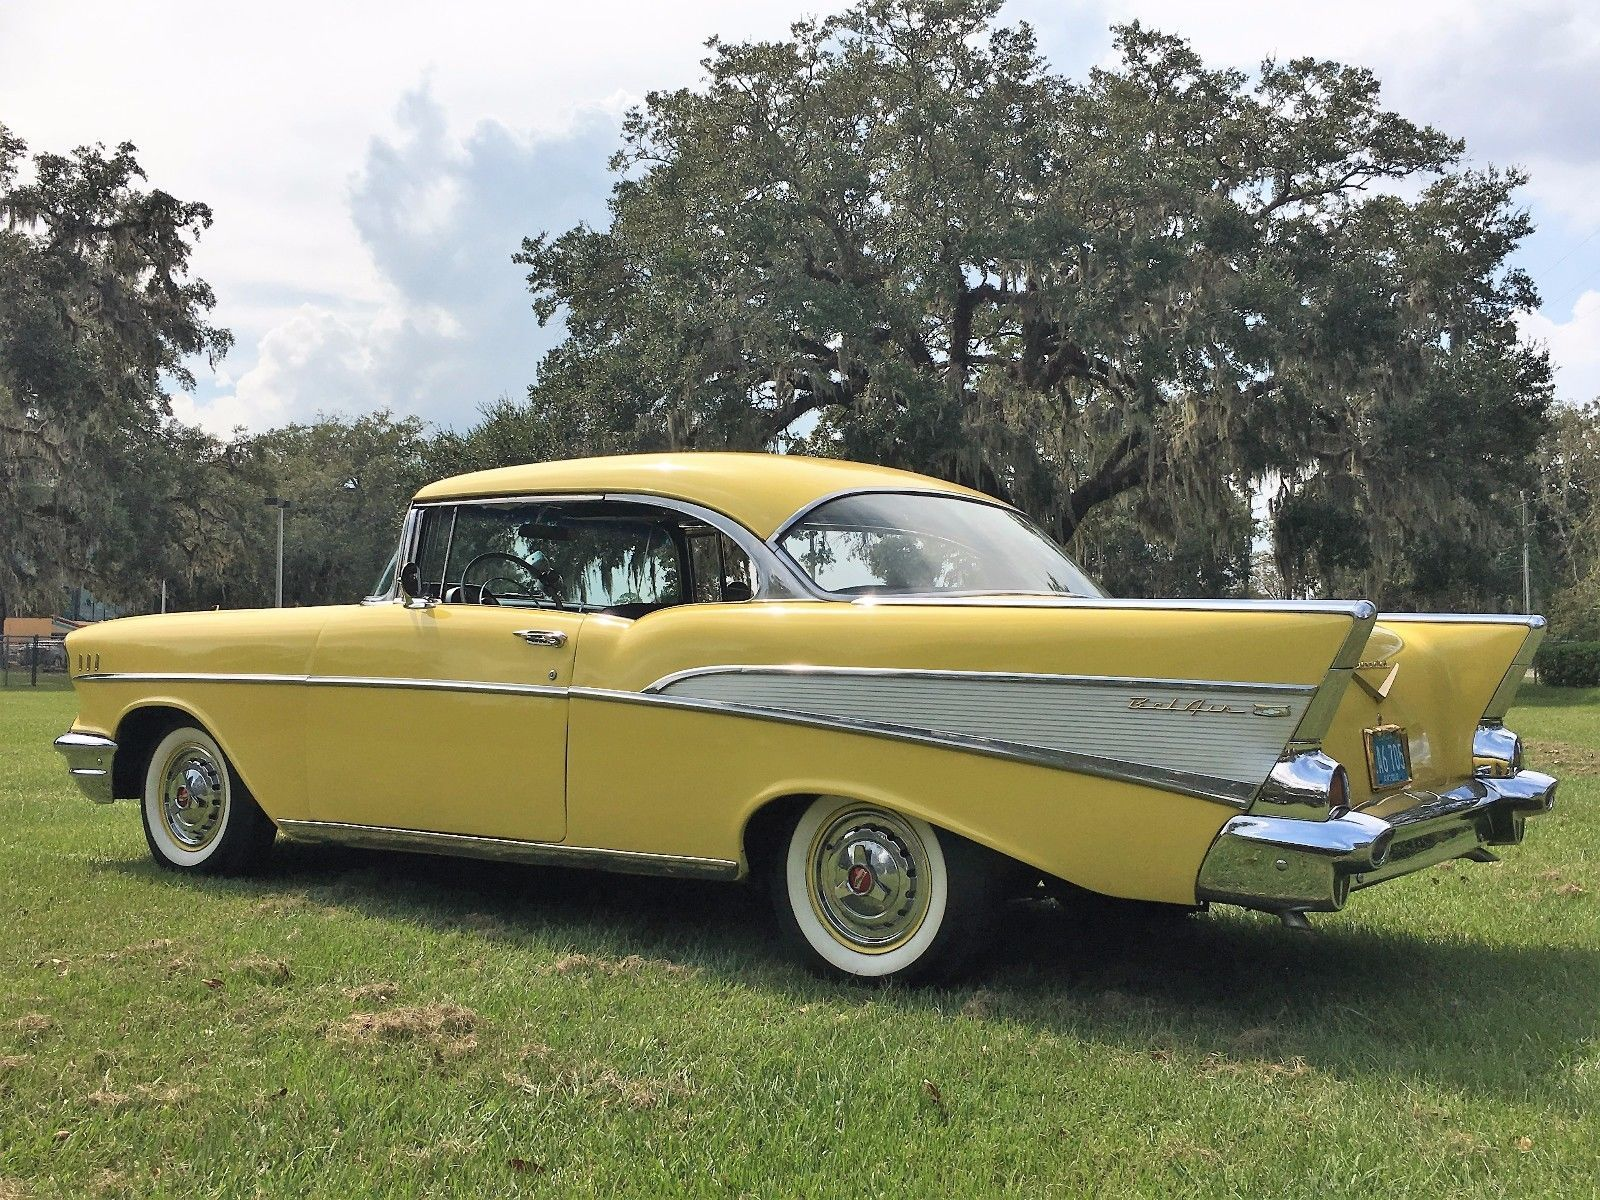 Pin By Deb On Classic Cars Pinterest Chevrolet Chevy And 1957 El Camino Nice Awesome Bel Air 150 210 2 Door Hardtop Beautiful Yellow